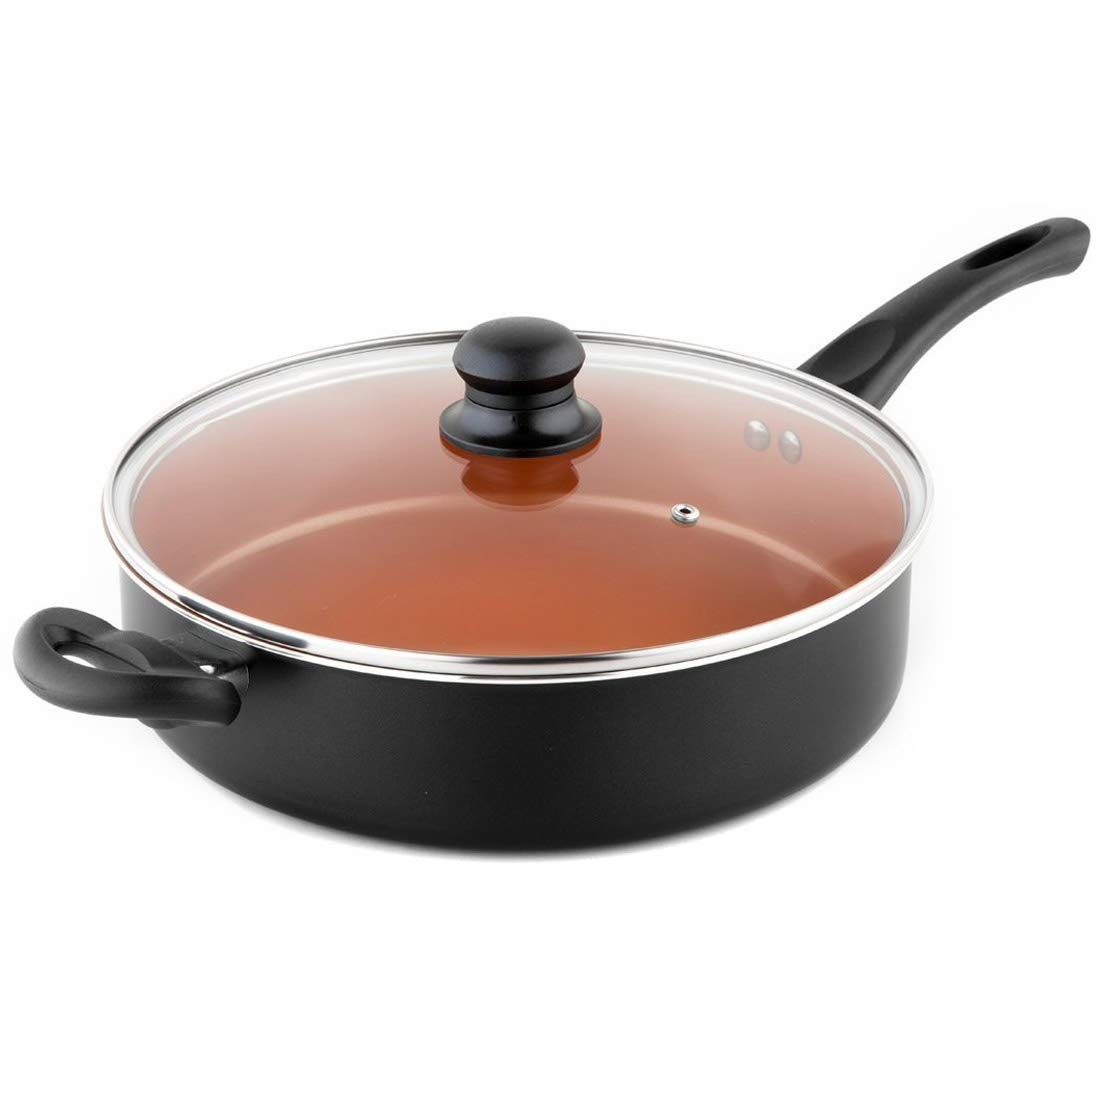 MICHELANGELO Ultra Nonstick 5 Quart Copper Saute Pan with Lid, Copper Frying Pan, Deep Saute Pan Nonstick, 11 Inch Induction Skillets by MICHELANGELO